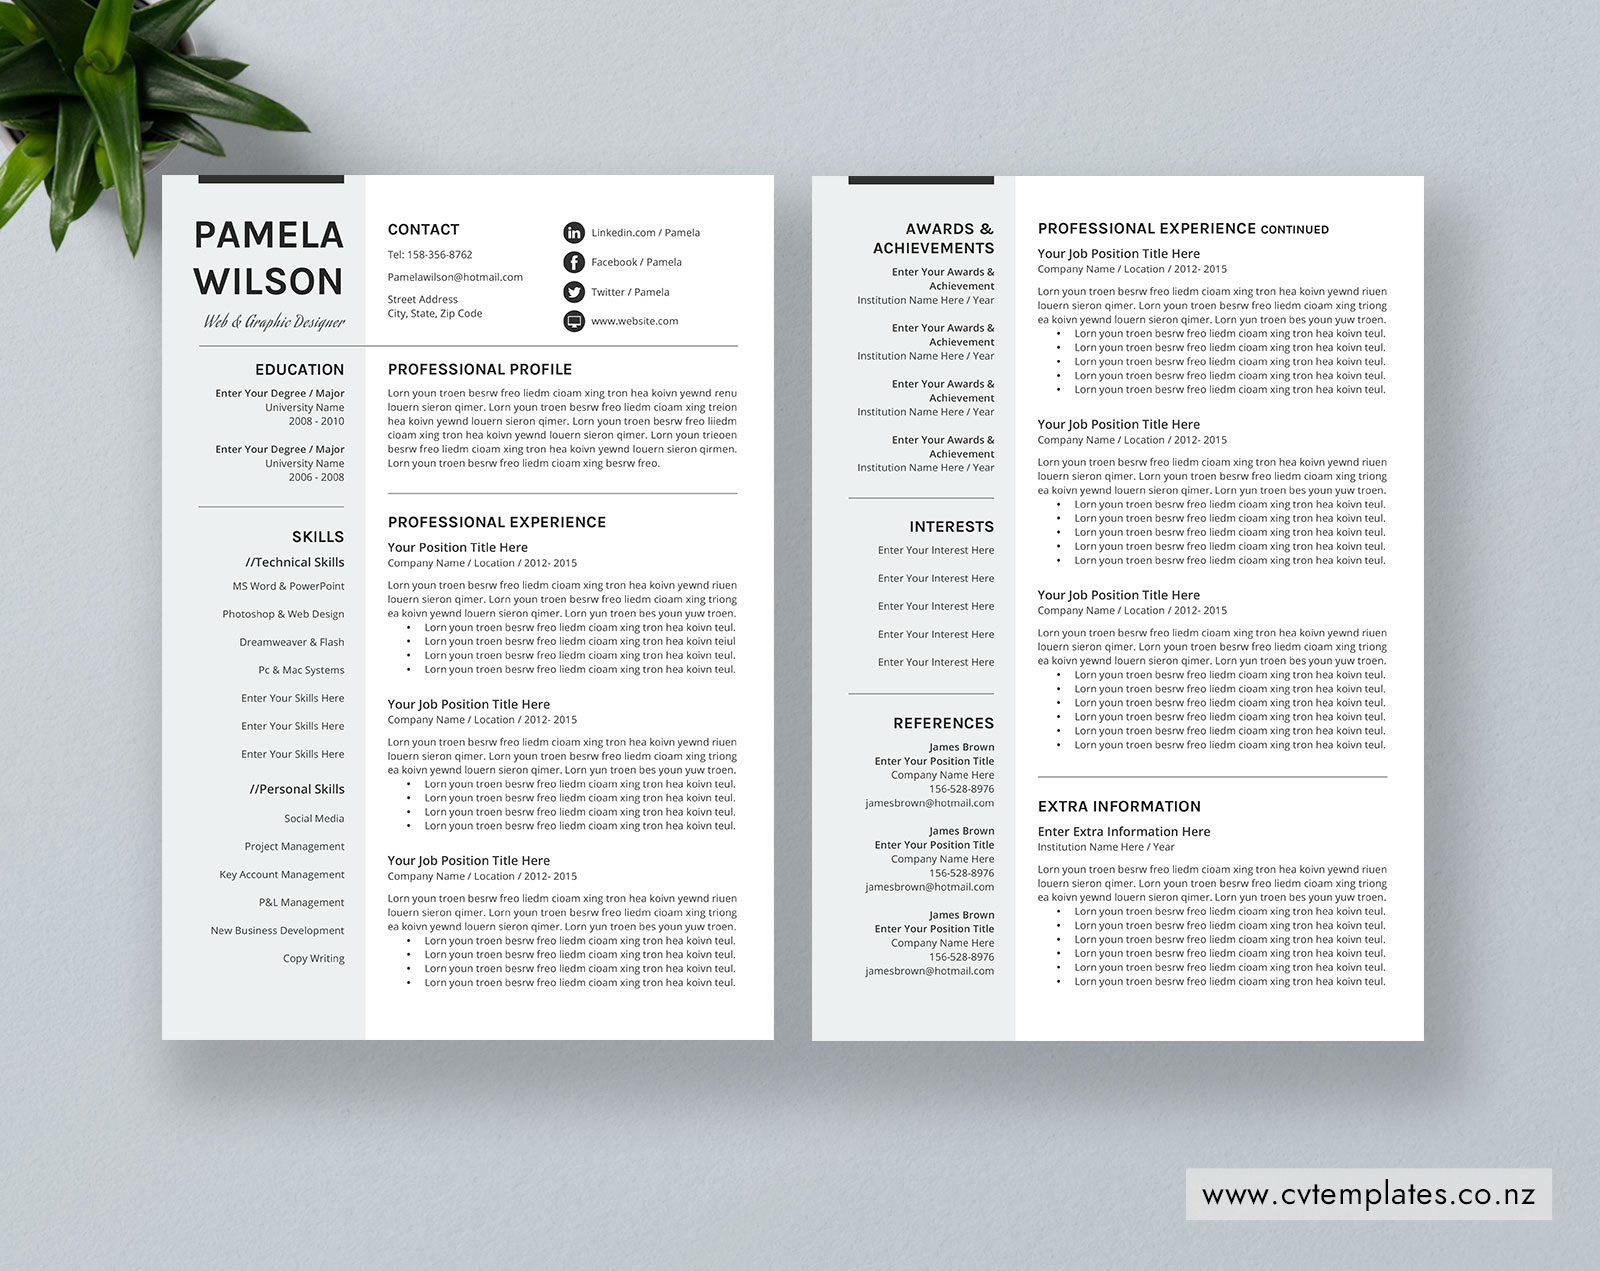 Cv Template For Ms Word Curriculum Vitae Professional Cv Template Cover Letter Editable Resume Format Modern Resume Teacher Resume 1 2 And 3